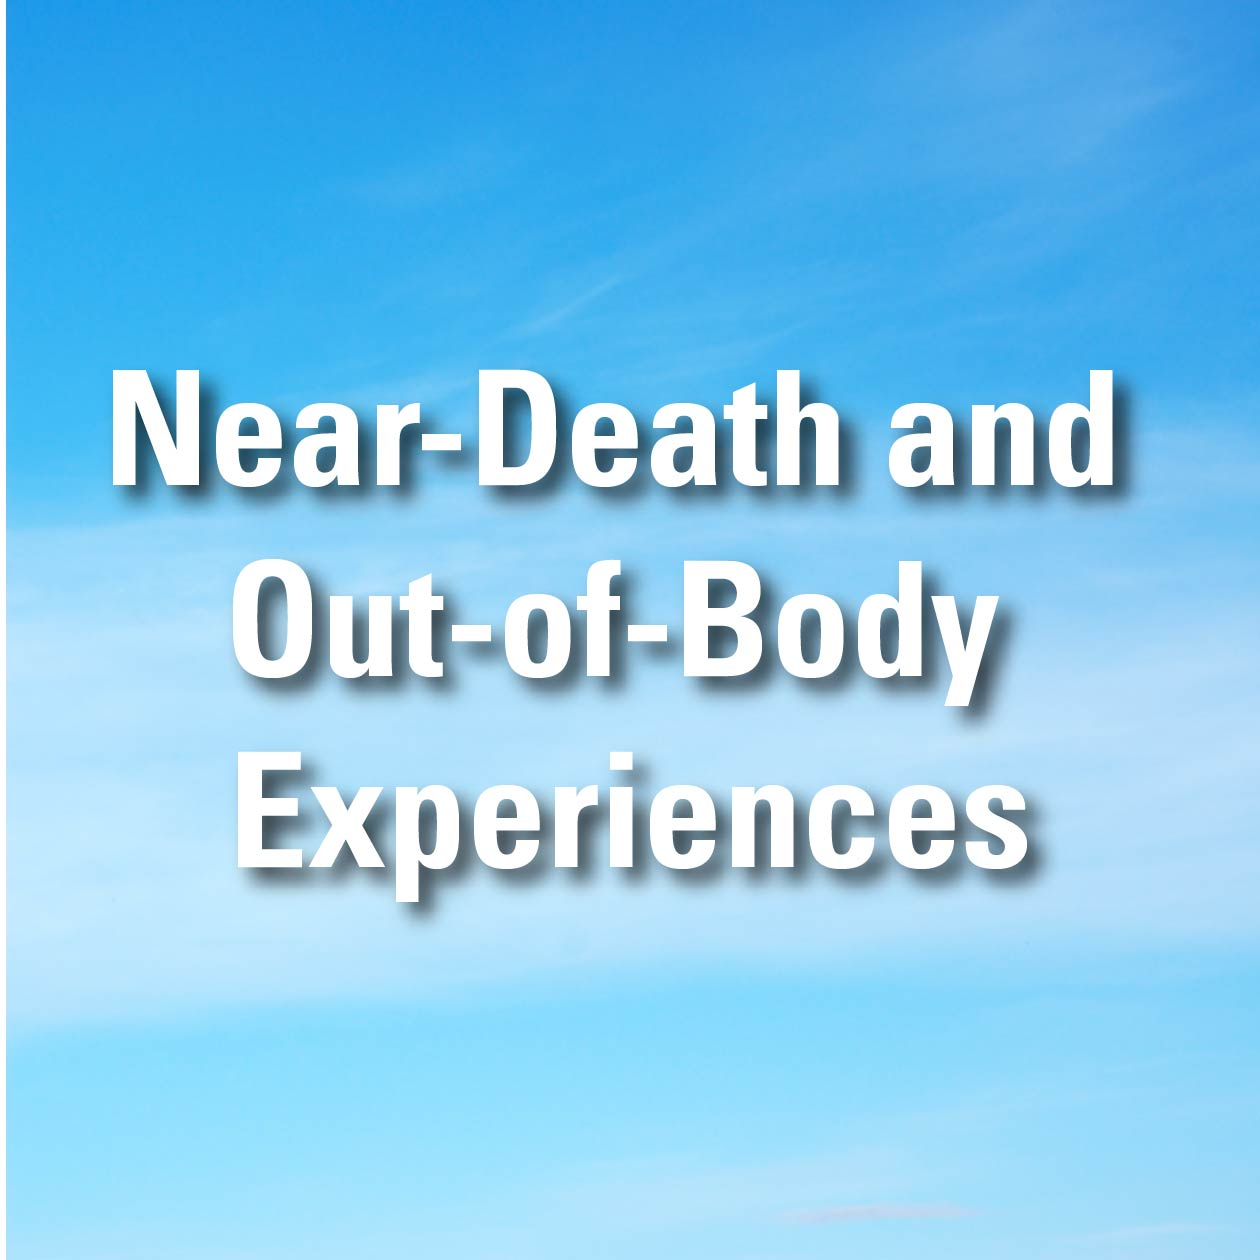 Near-Death & Out-of-Body Experiences   Expand with Julius and Xpnsion Network